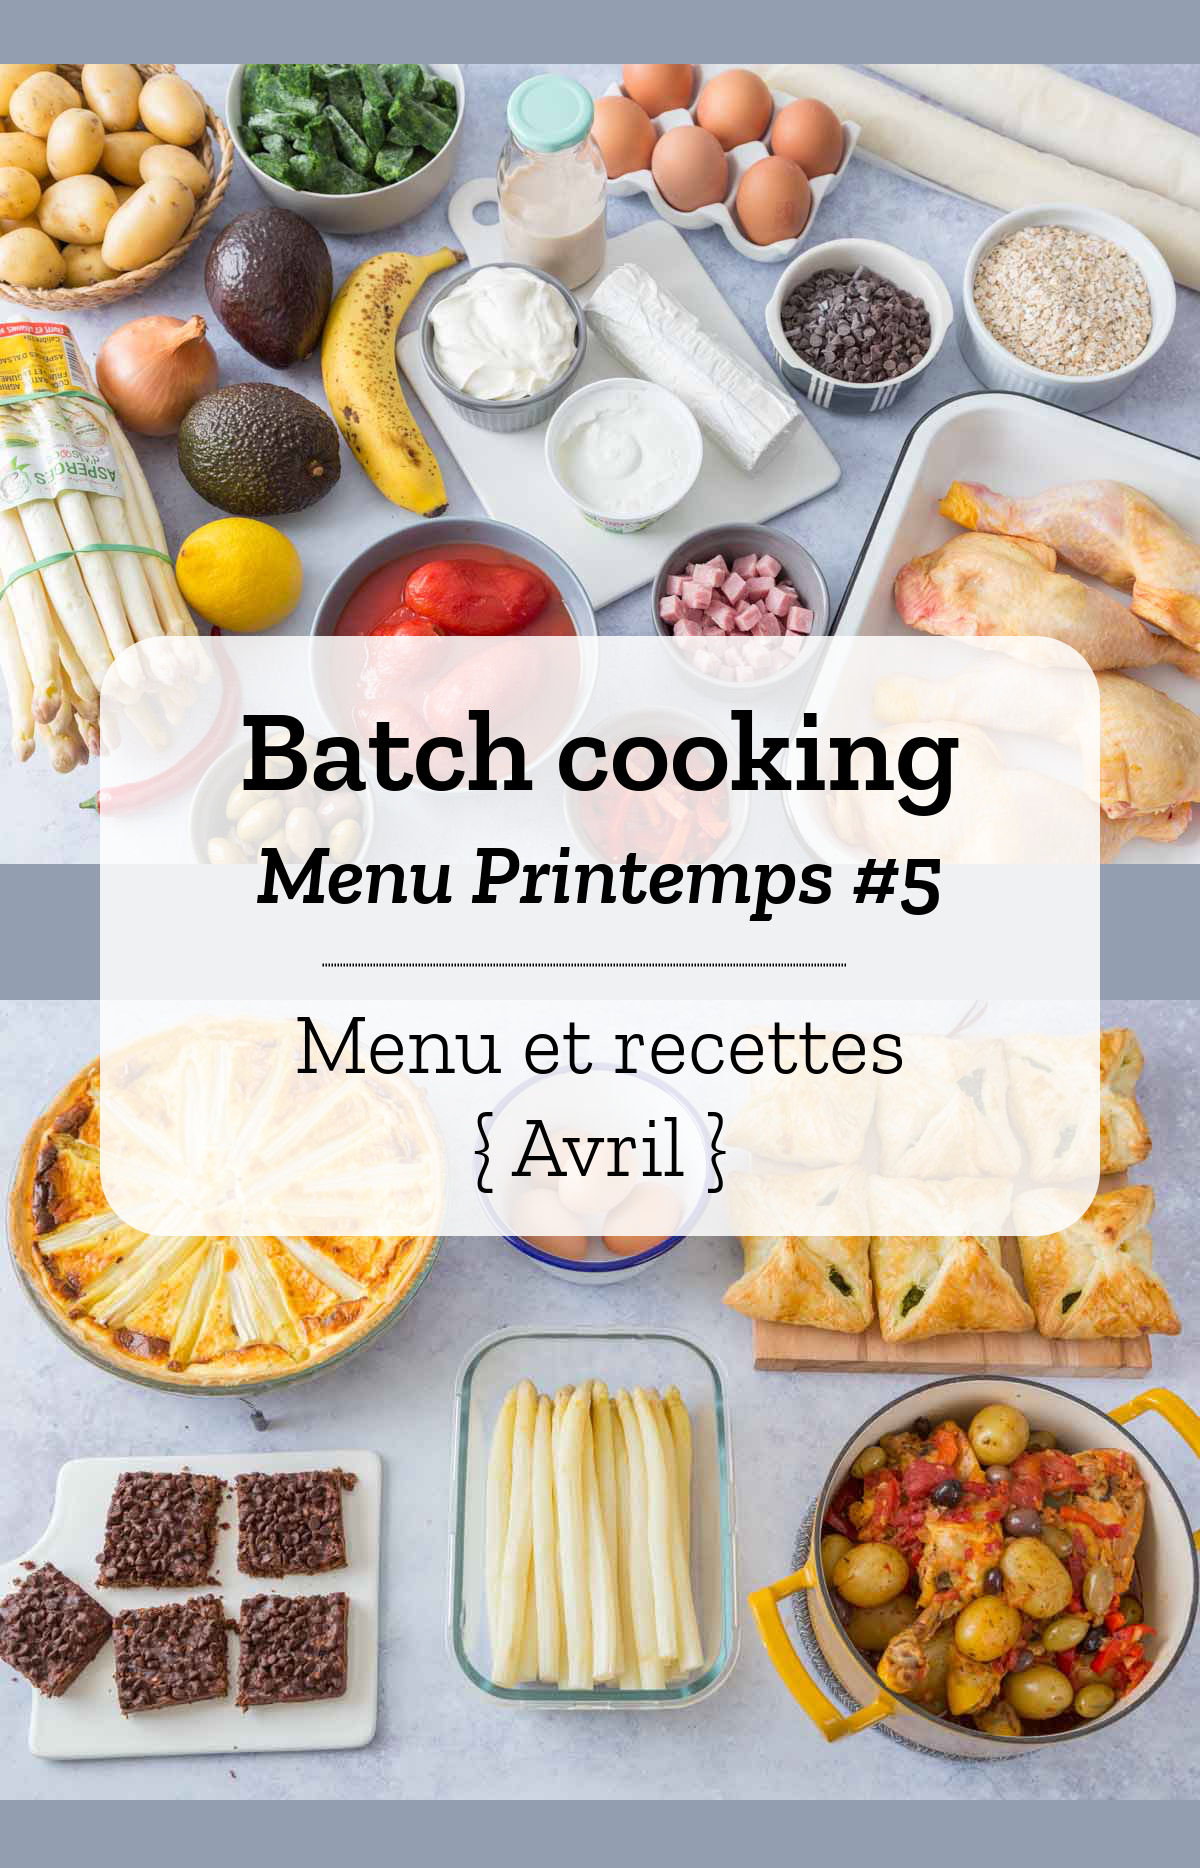 Batch cooking Printemps #5 – Semaine du 22 au 26 avril 2019